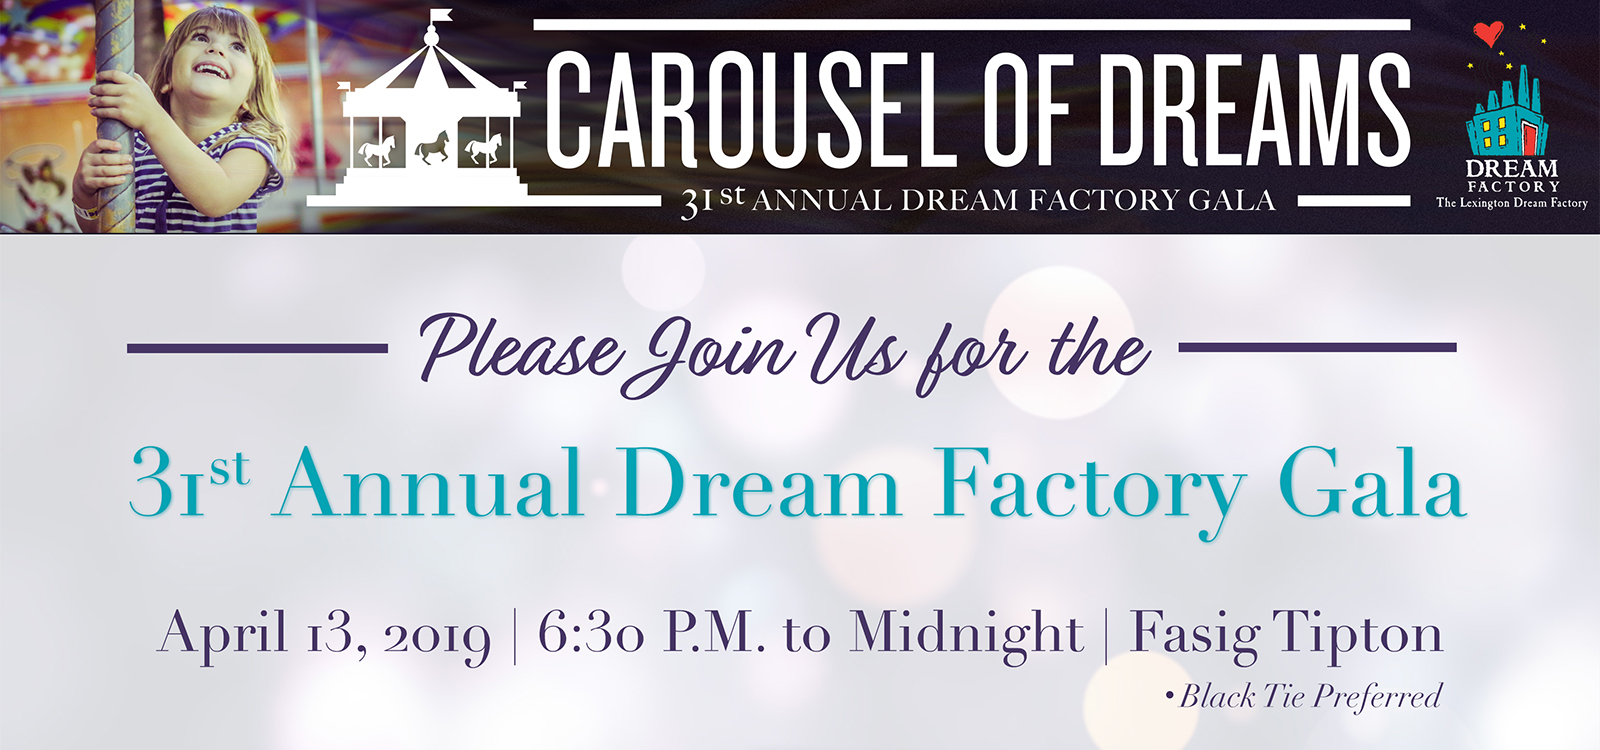 Lexington Dream Factory Gala